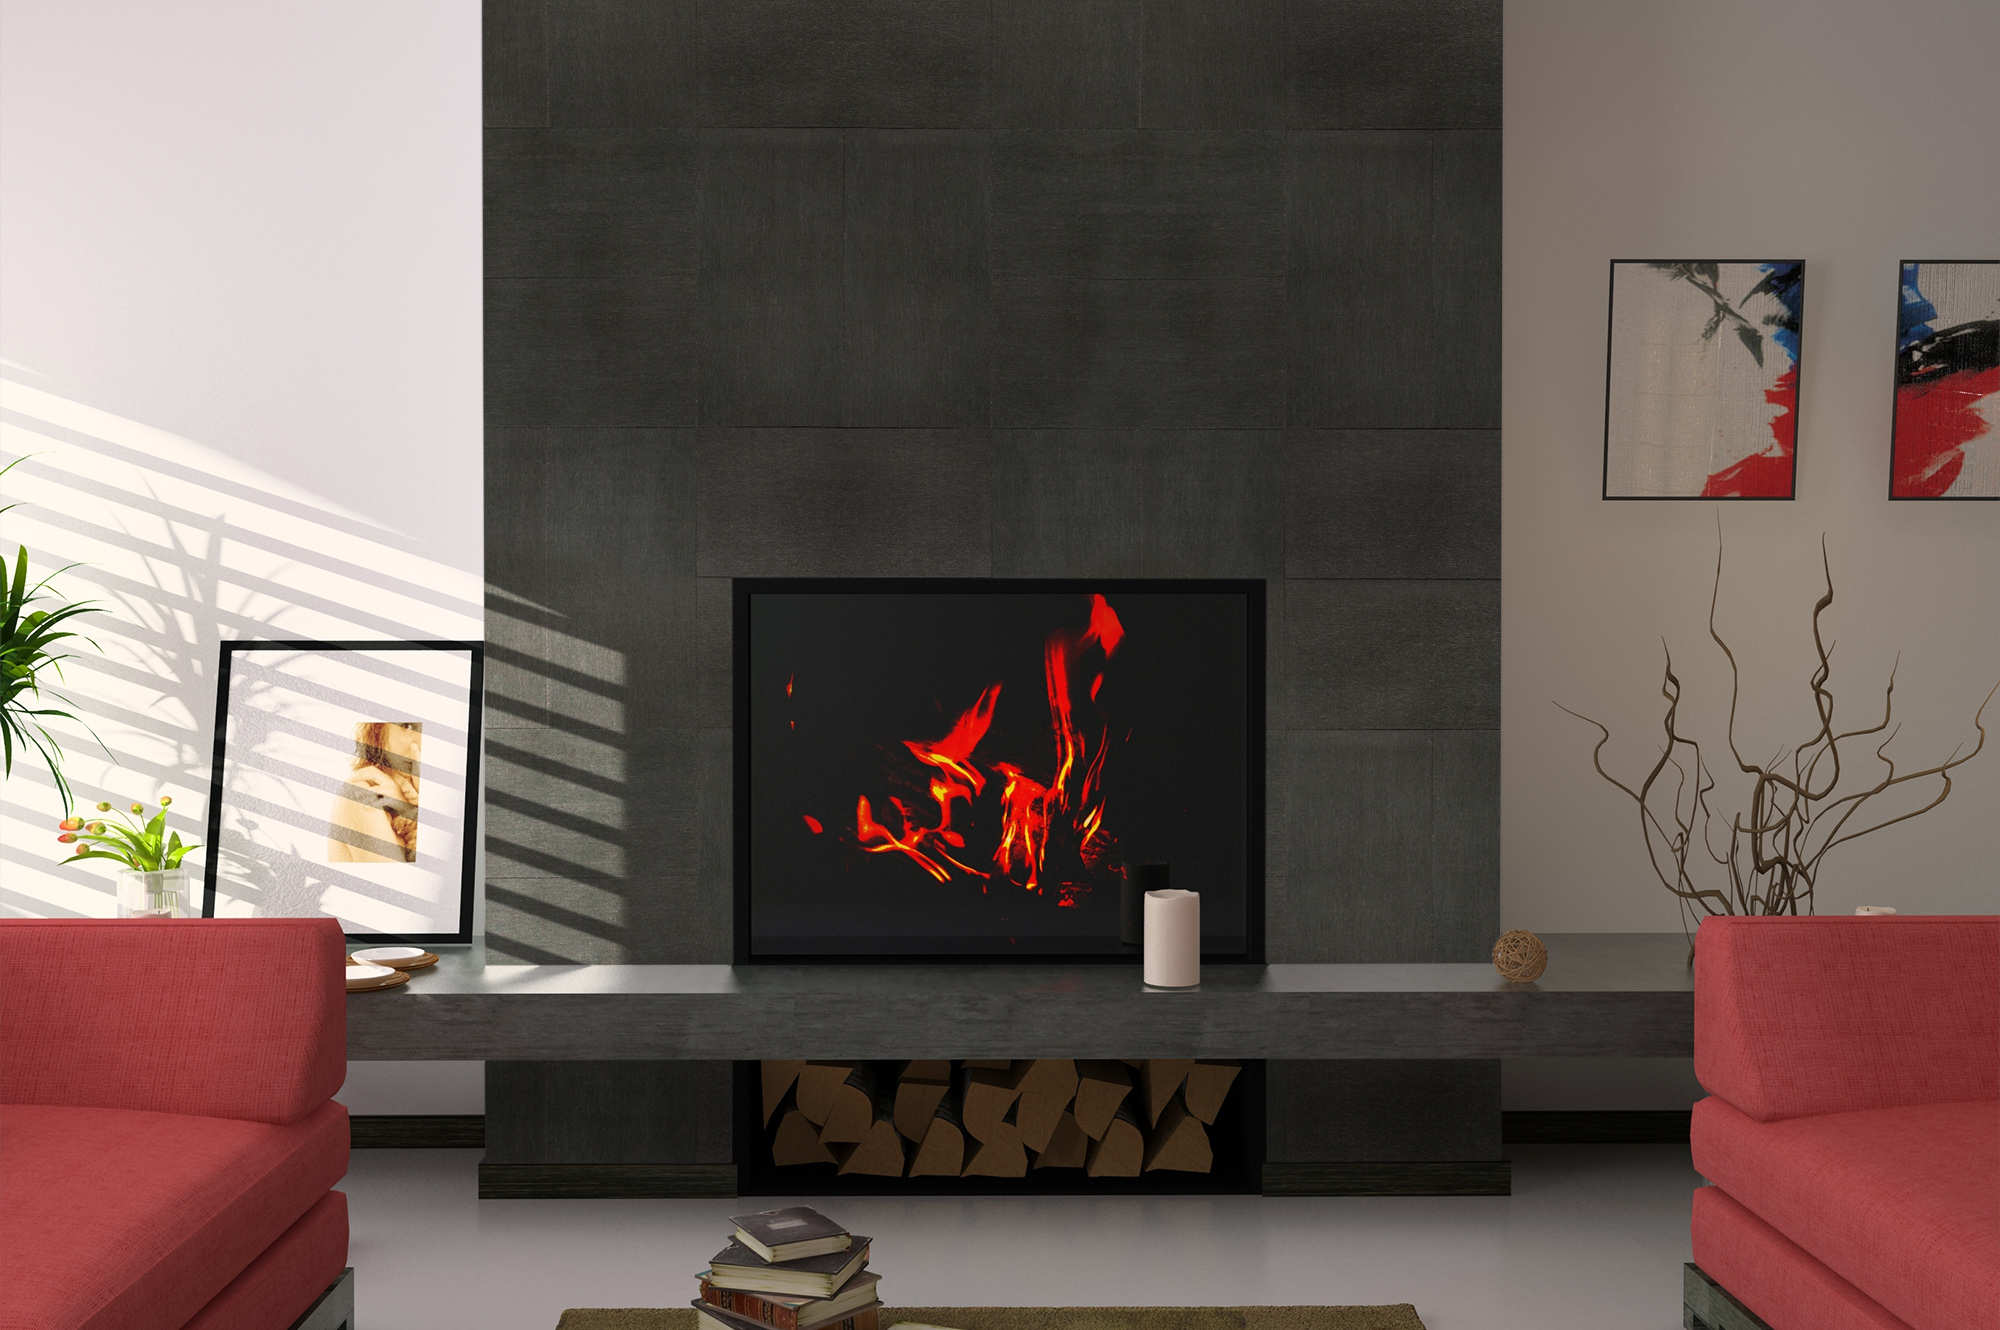 How to install a ceramic or porcelain tile fireplace surround for 12x24 window